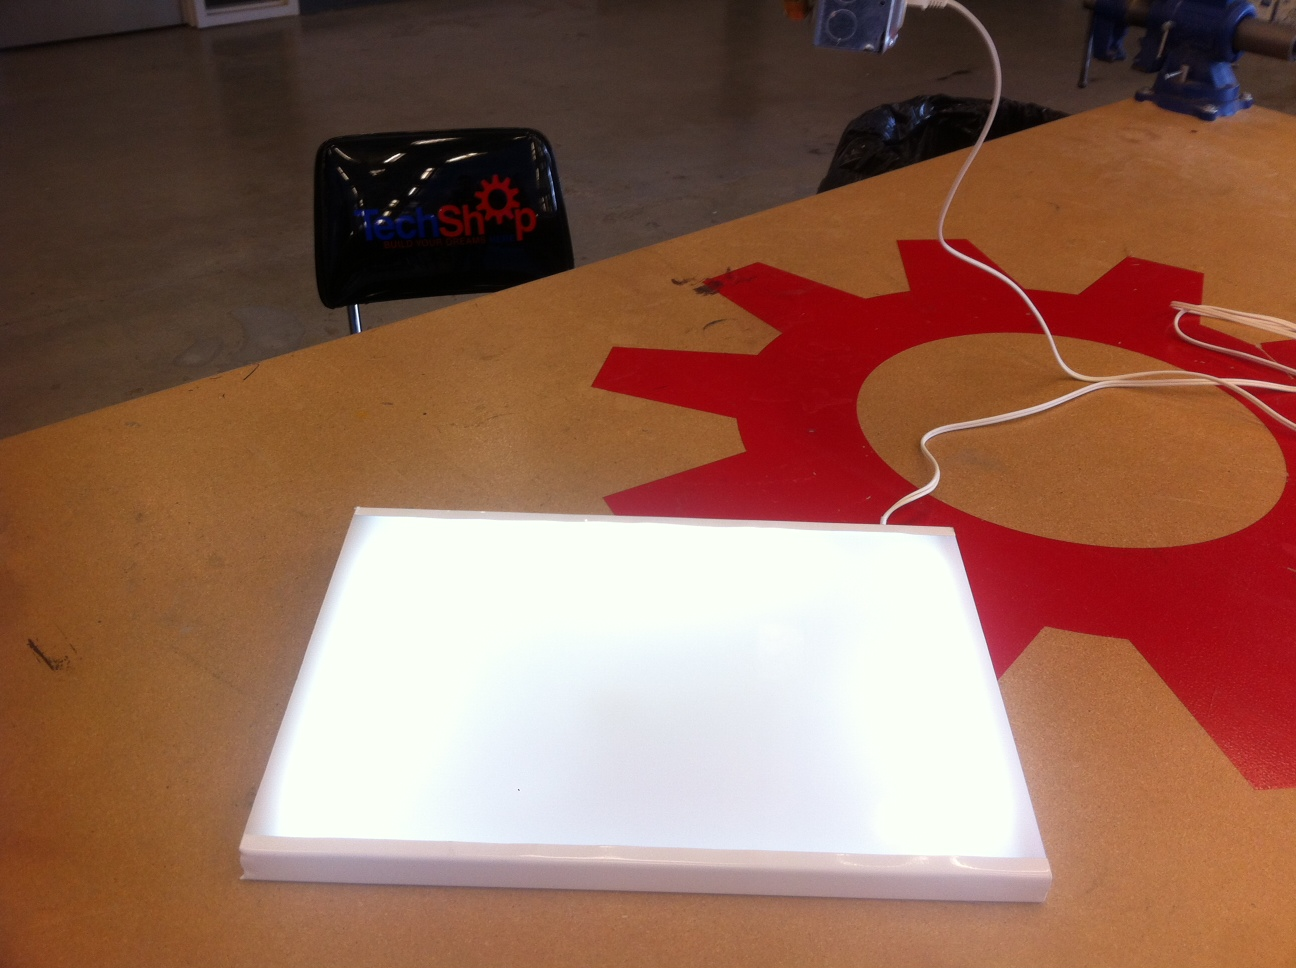 Inexpensive DIY LED Lightbox for Tracing